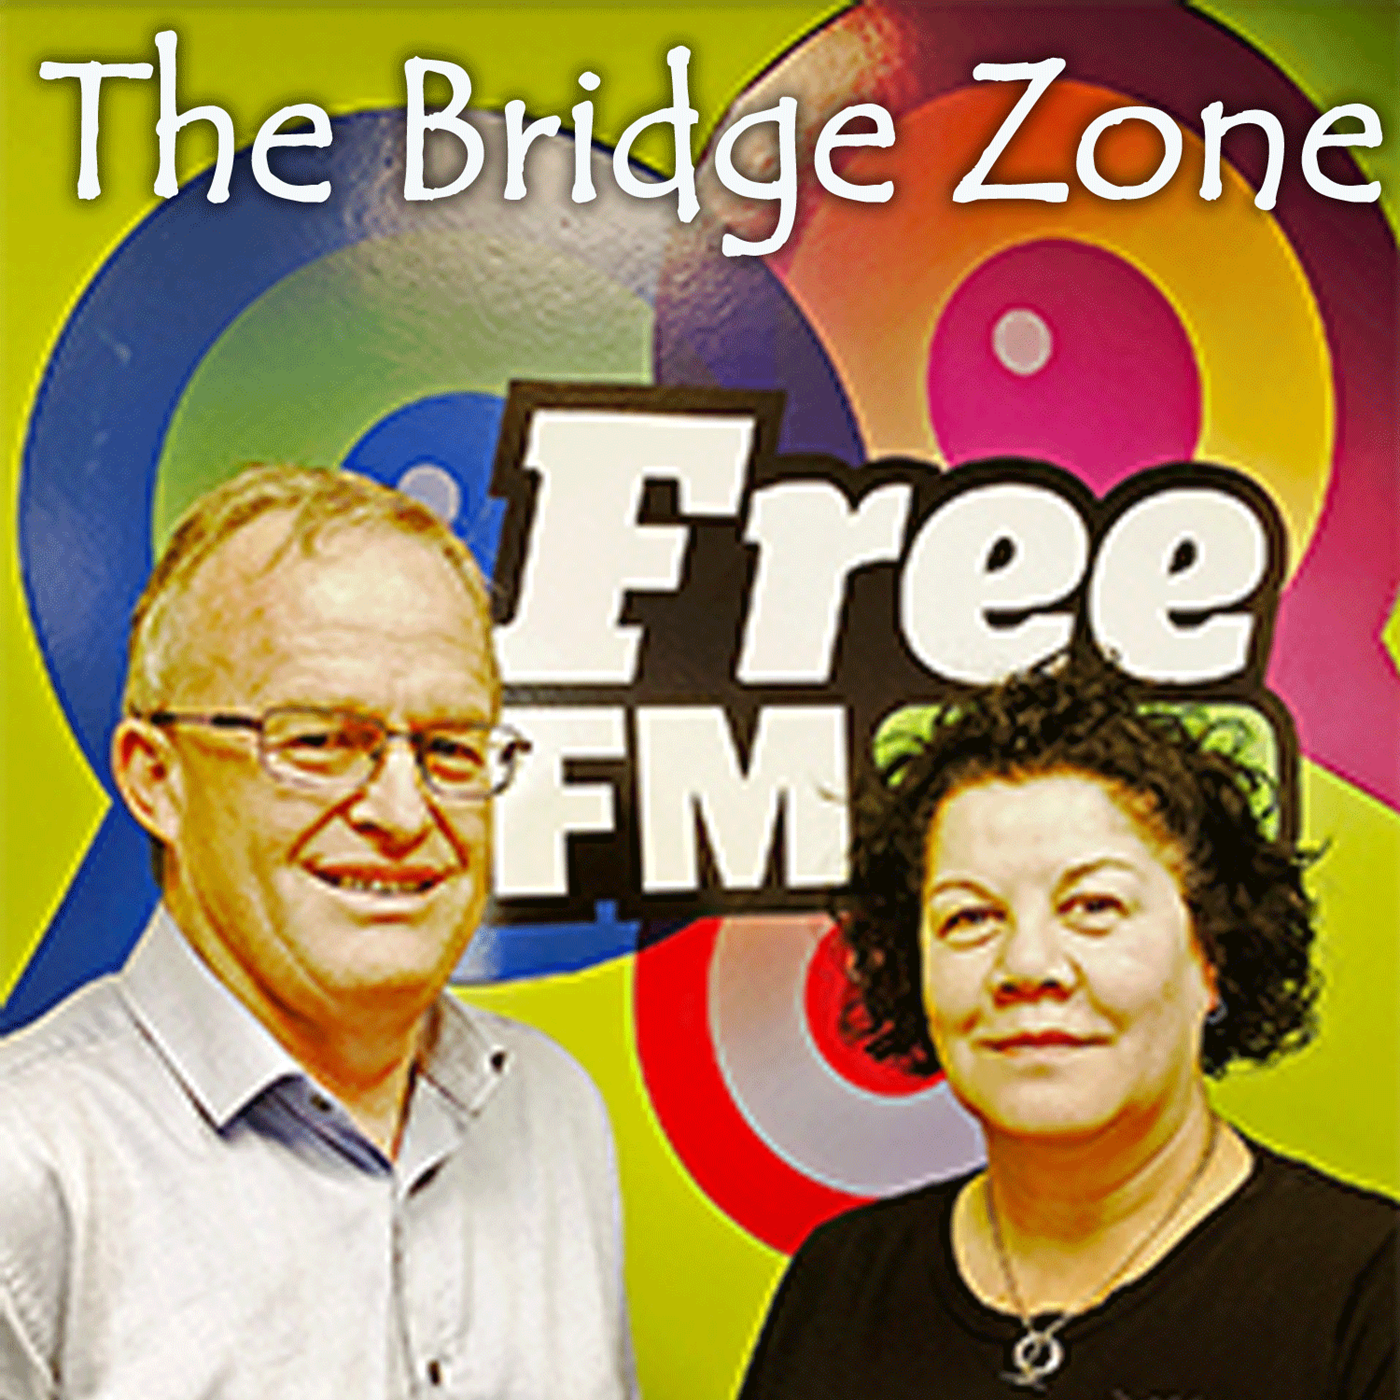 The Bridge Zone